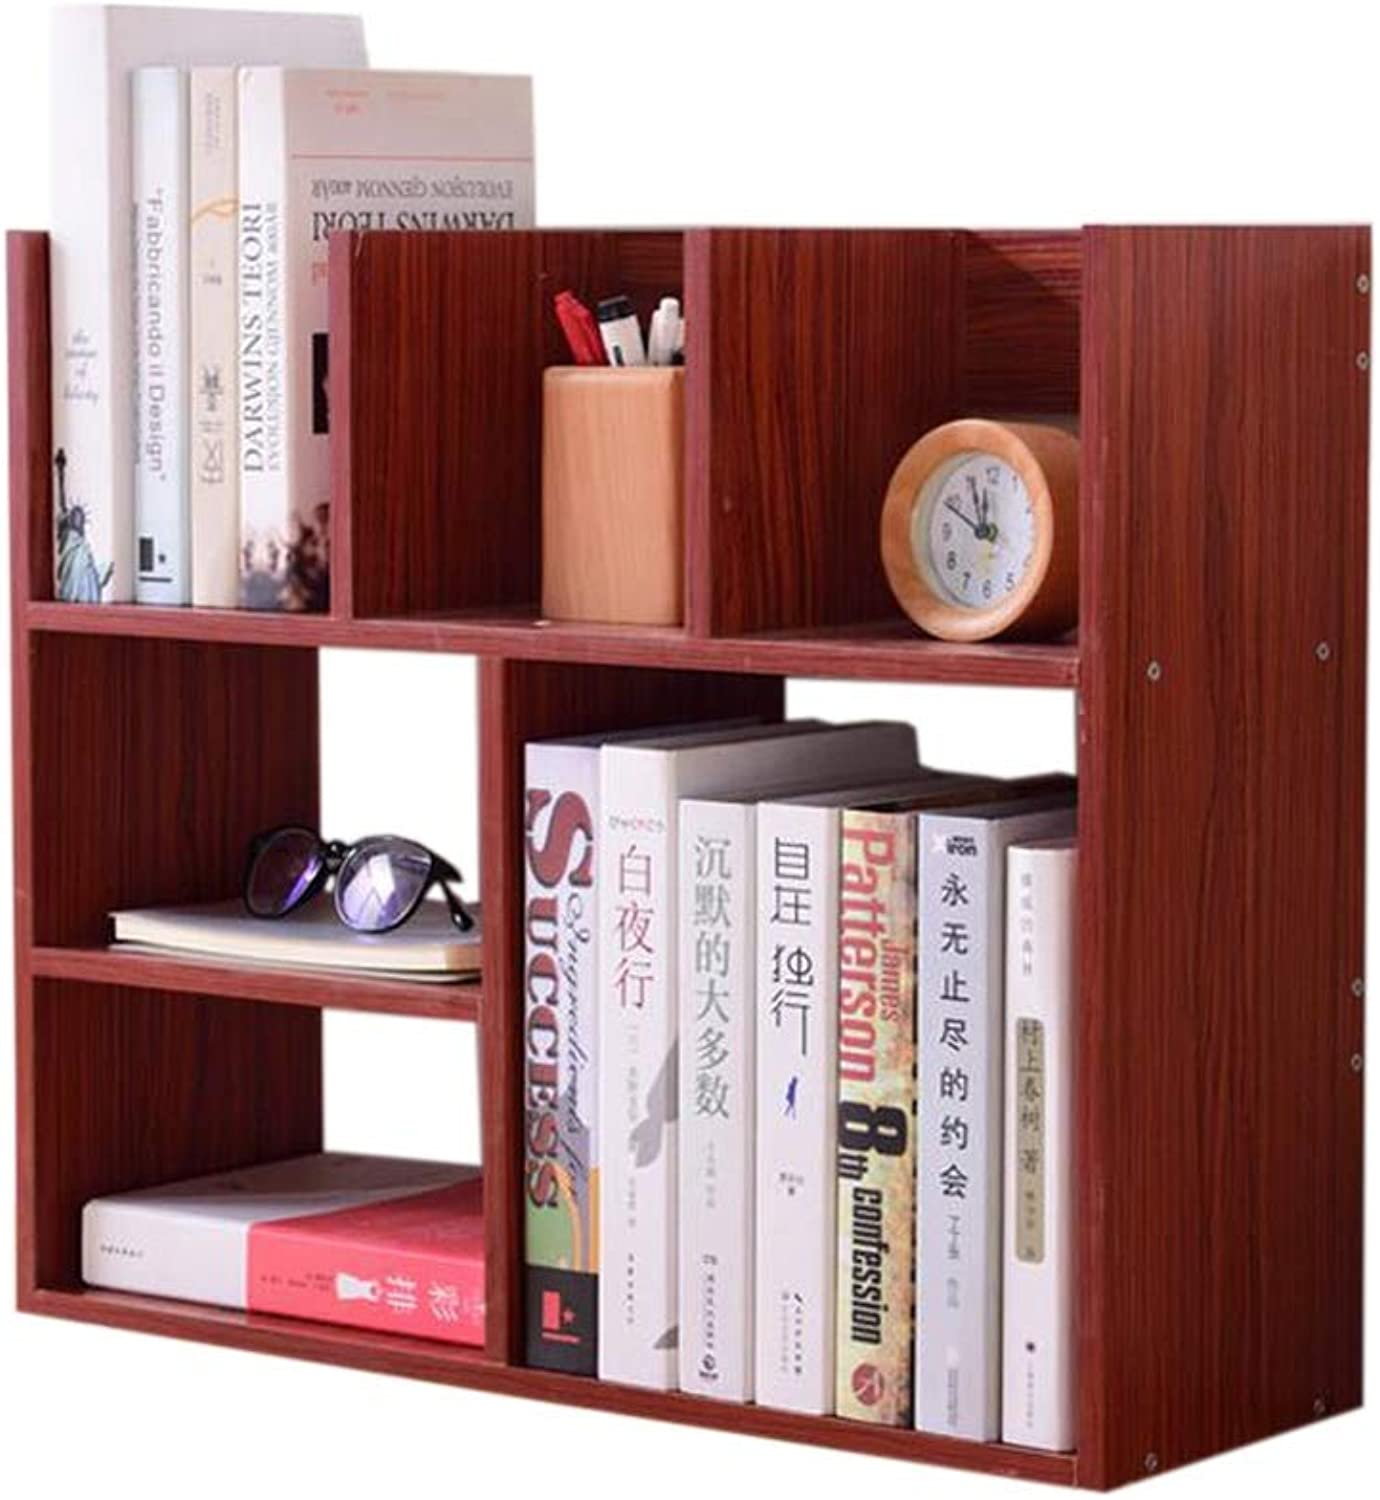 JCAFA Shelves Desktop Bookshelf Book Display Stand DYI Assembly Student Use Wooden Display Stand Home Decoration, 23.62  7.84  19.68in (color   Mahogany color)